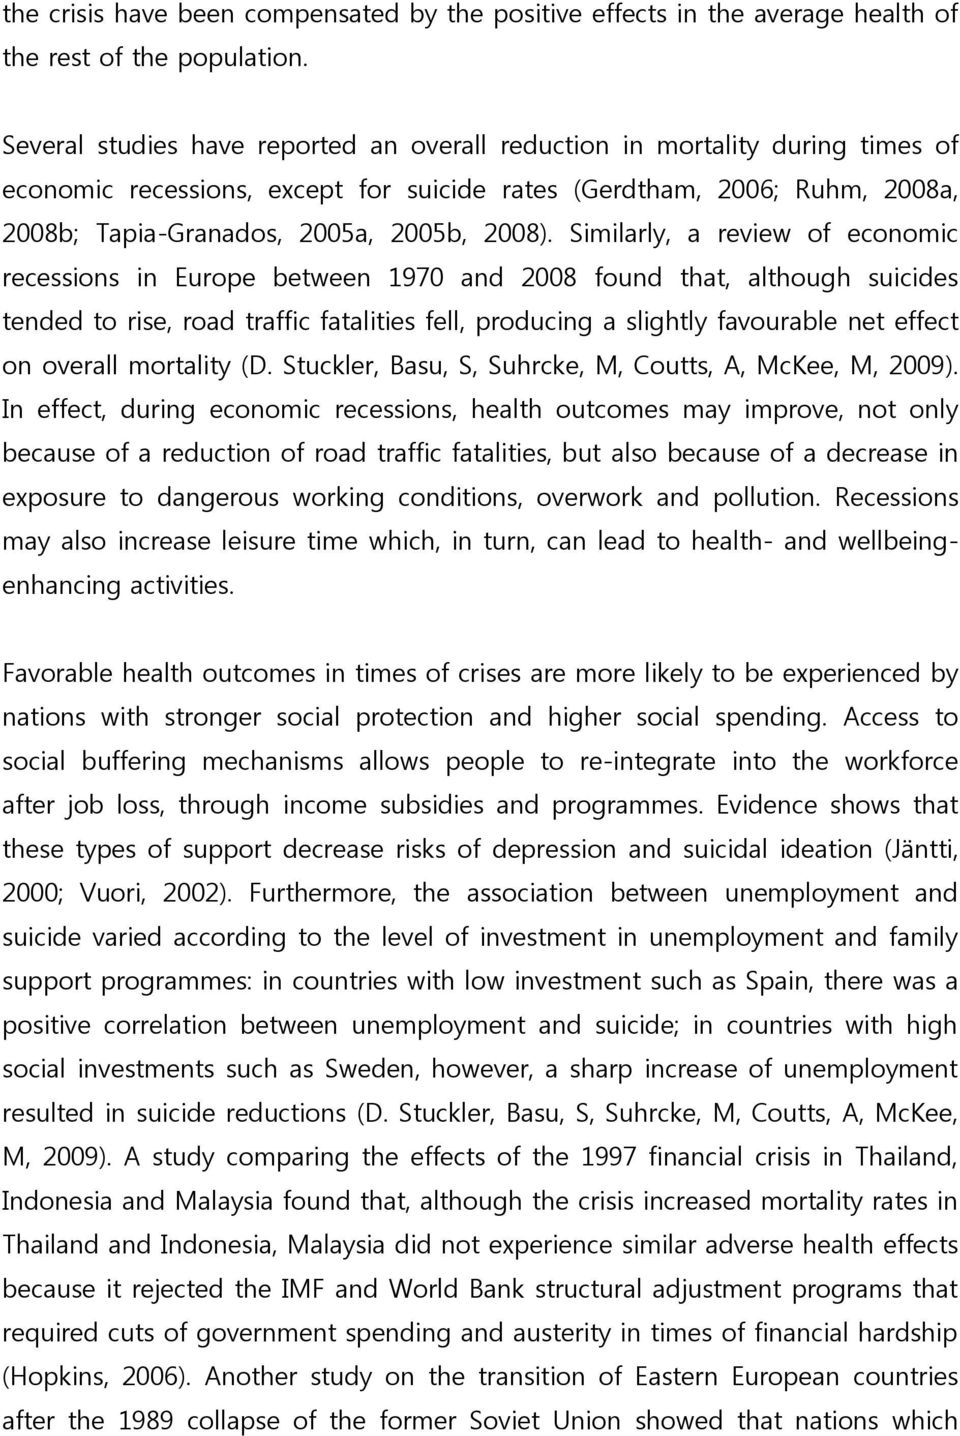 Similarly, a review of economic recessions in Europe between 1970 and 2008 found that, although suicides tended to rise, road traffic fatalities fell, producing a slightly favourable net effect on